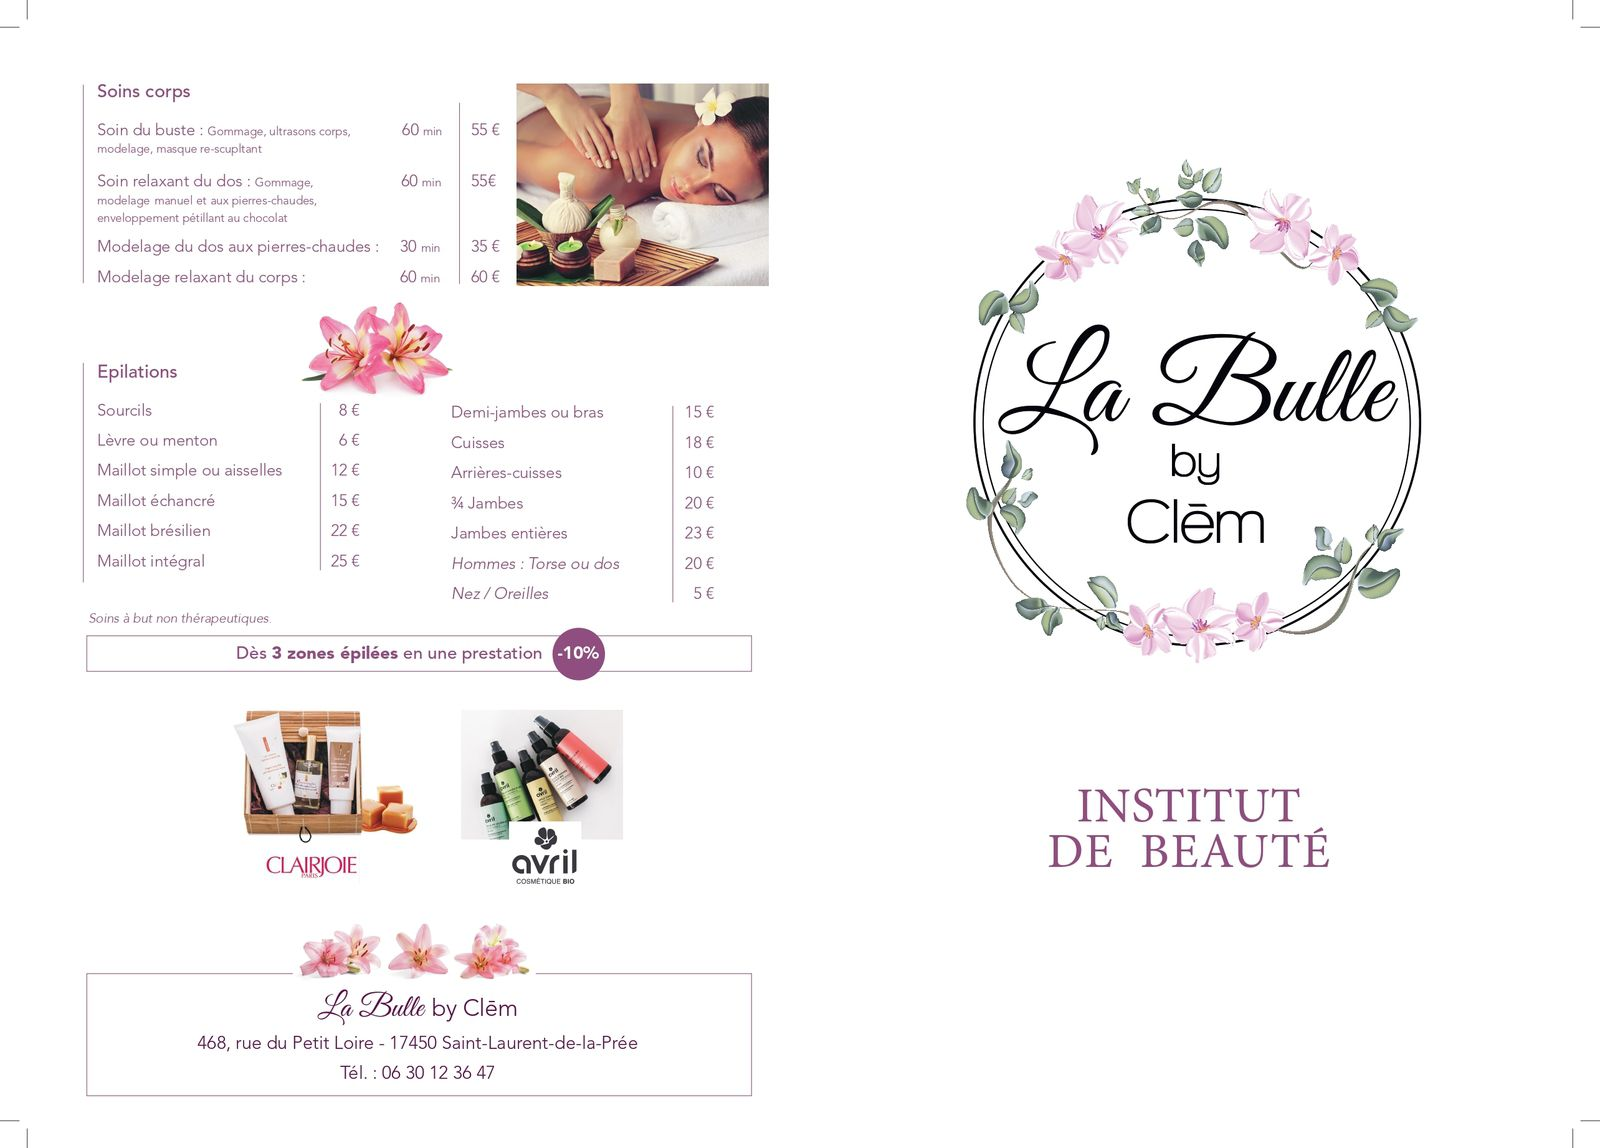 Ouverture institut de beauté traditionnel « La Bulle by Clem »